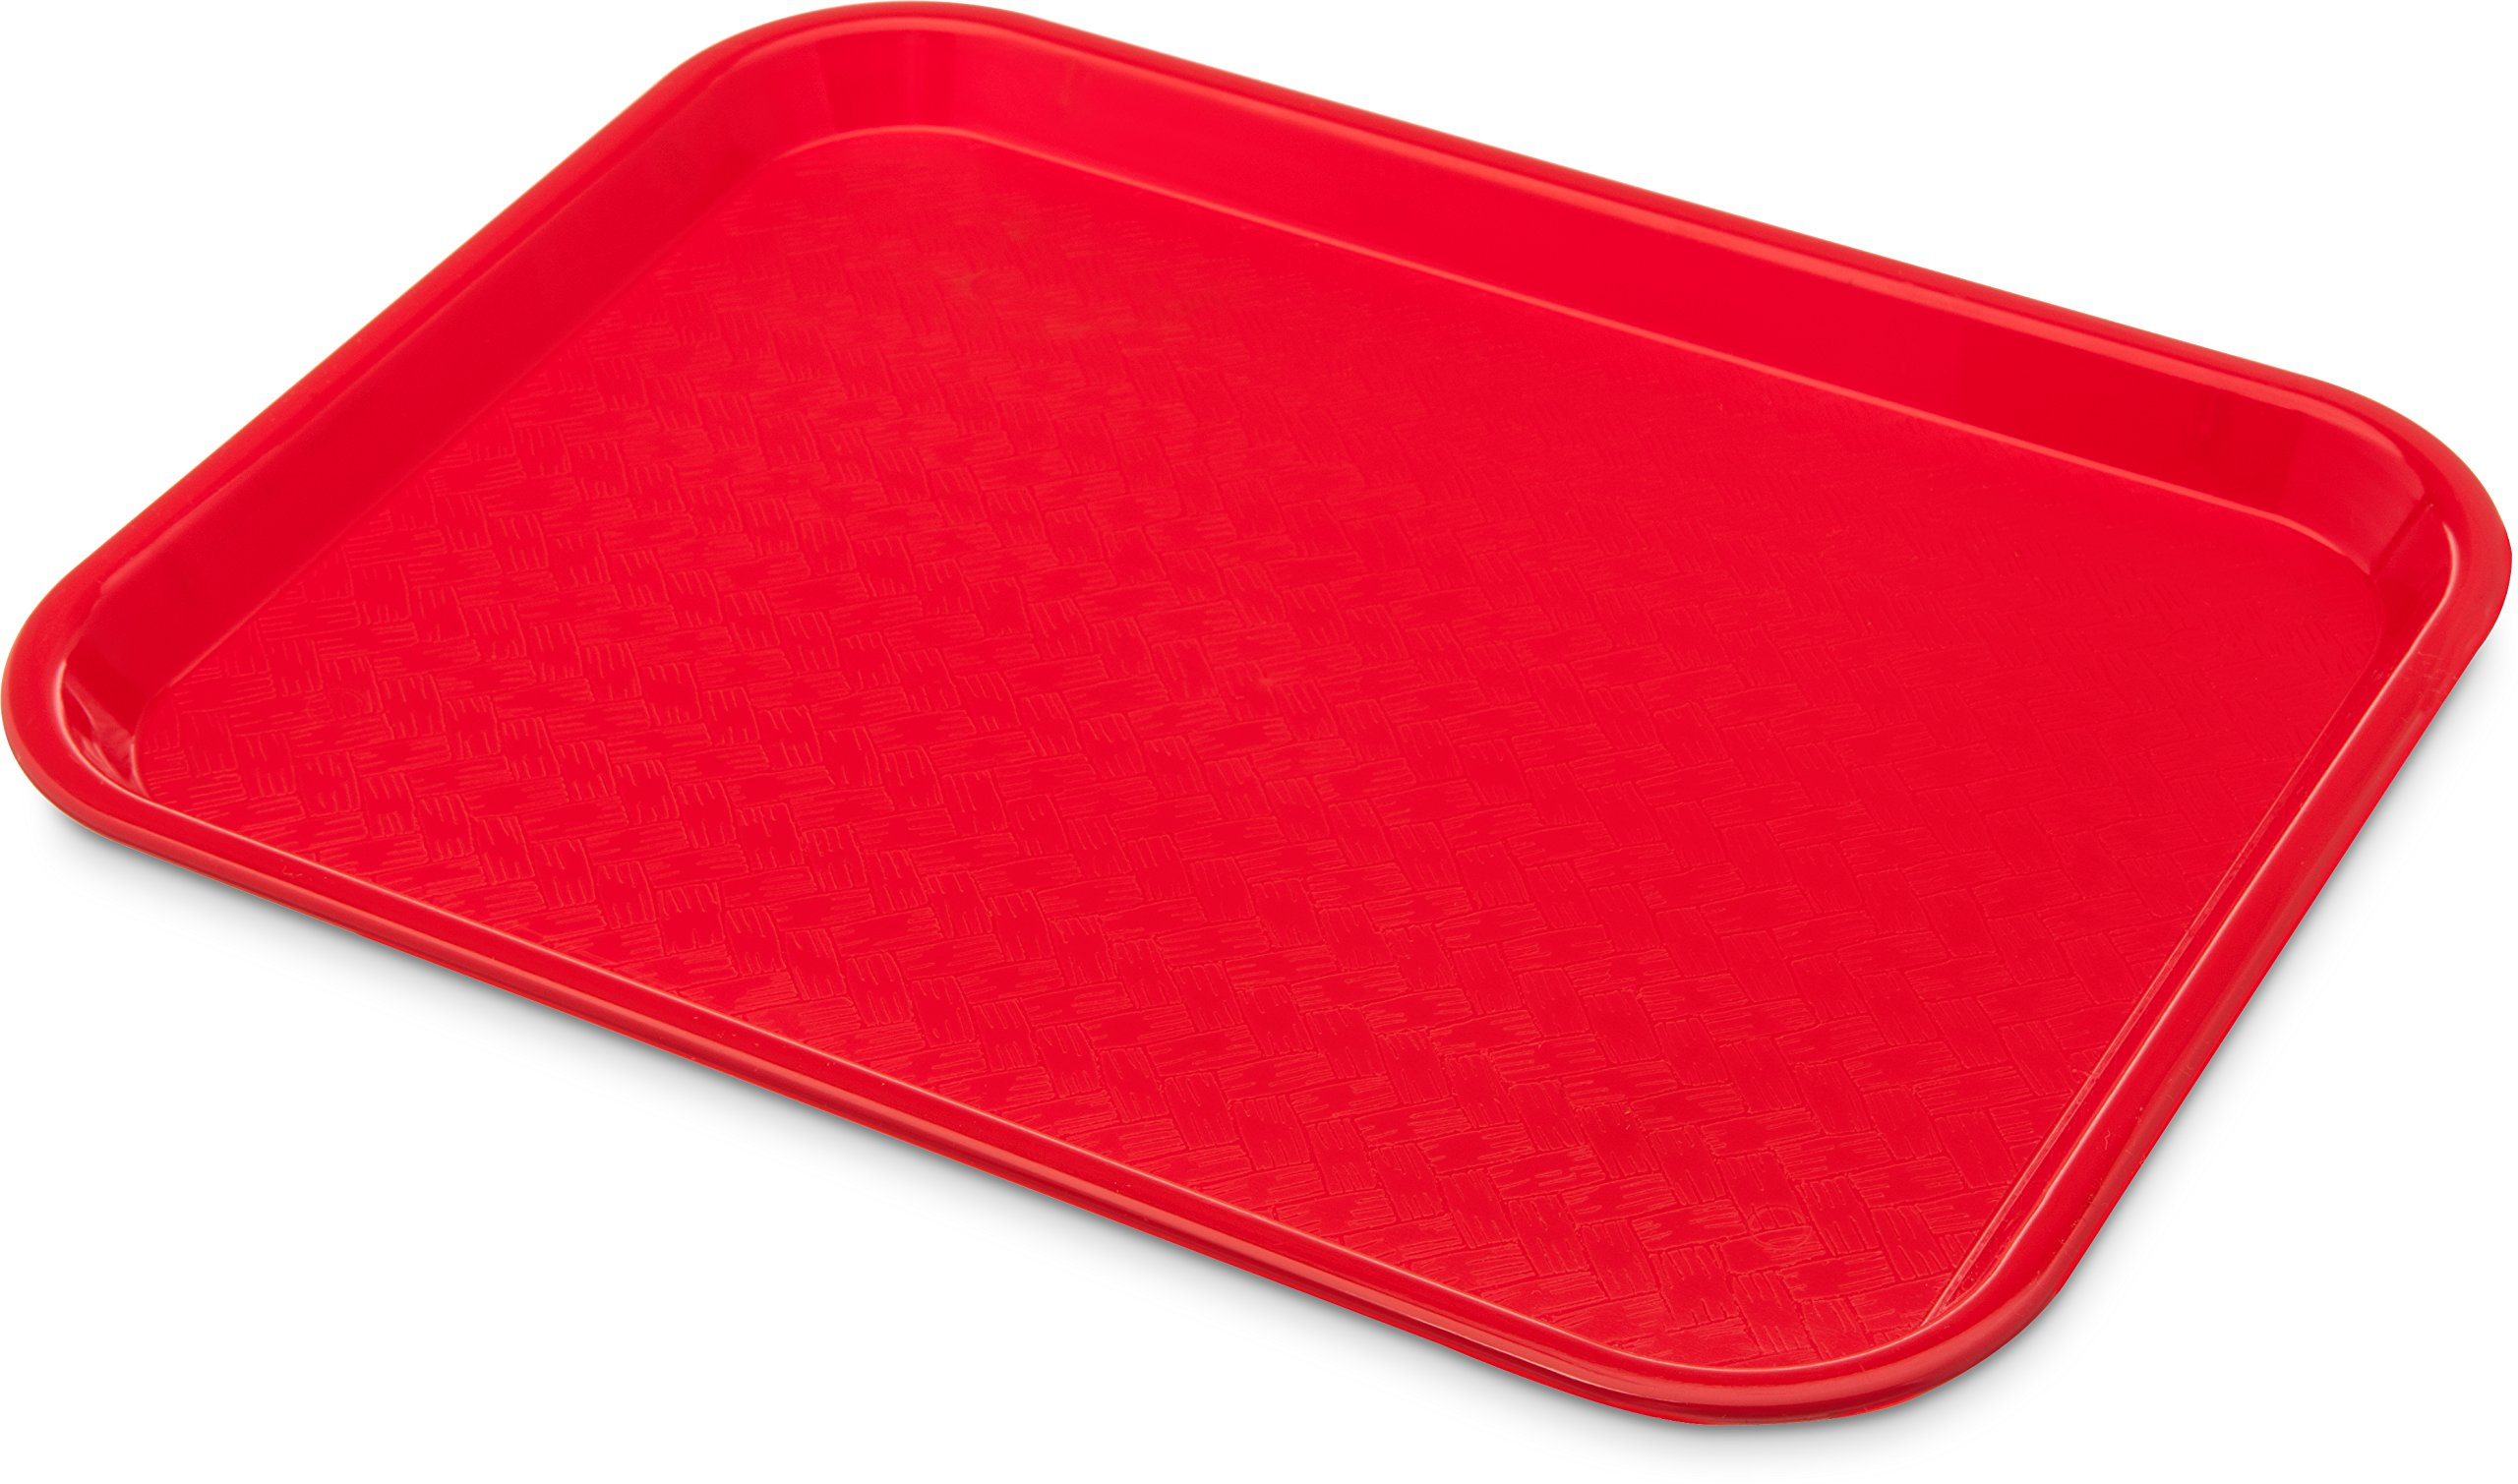 Carlisle CT1014-8105 Café Standard Cafeteria / Fast Food Tray, 10'' x 14'', Red (Pack of 6)